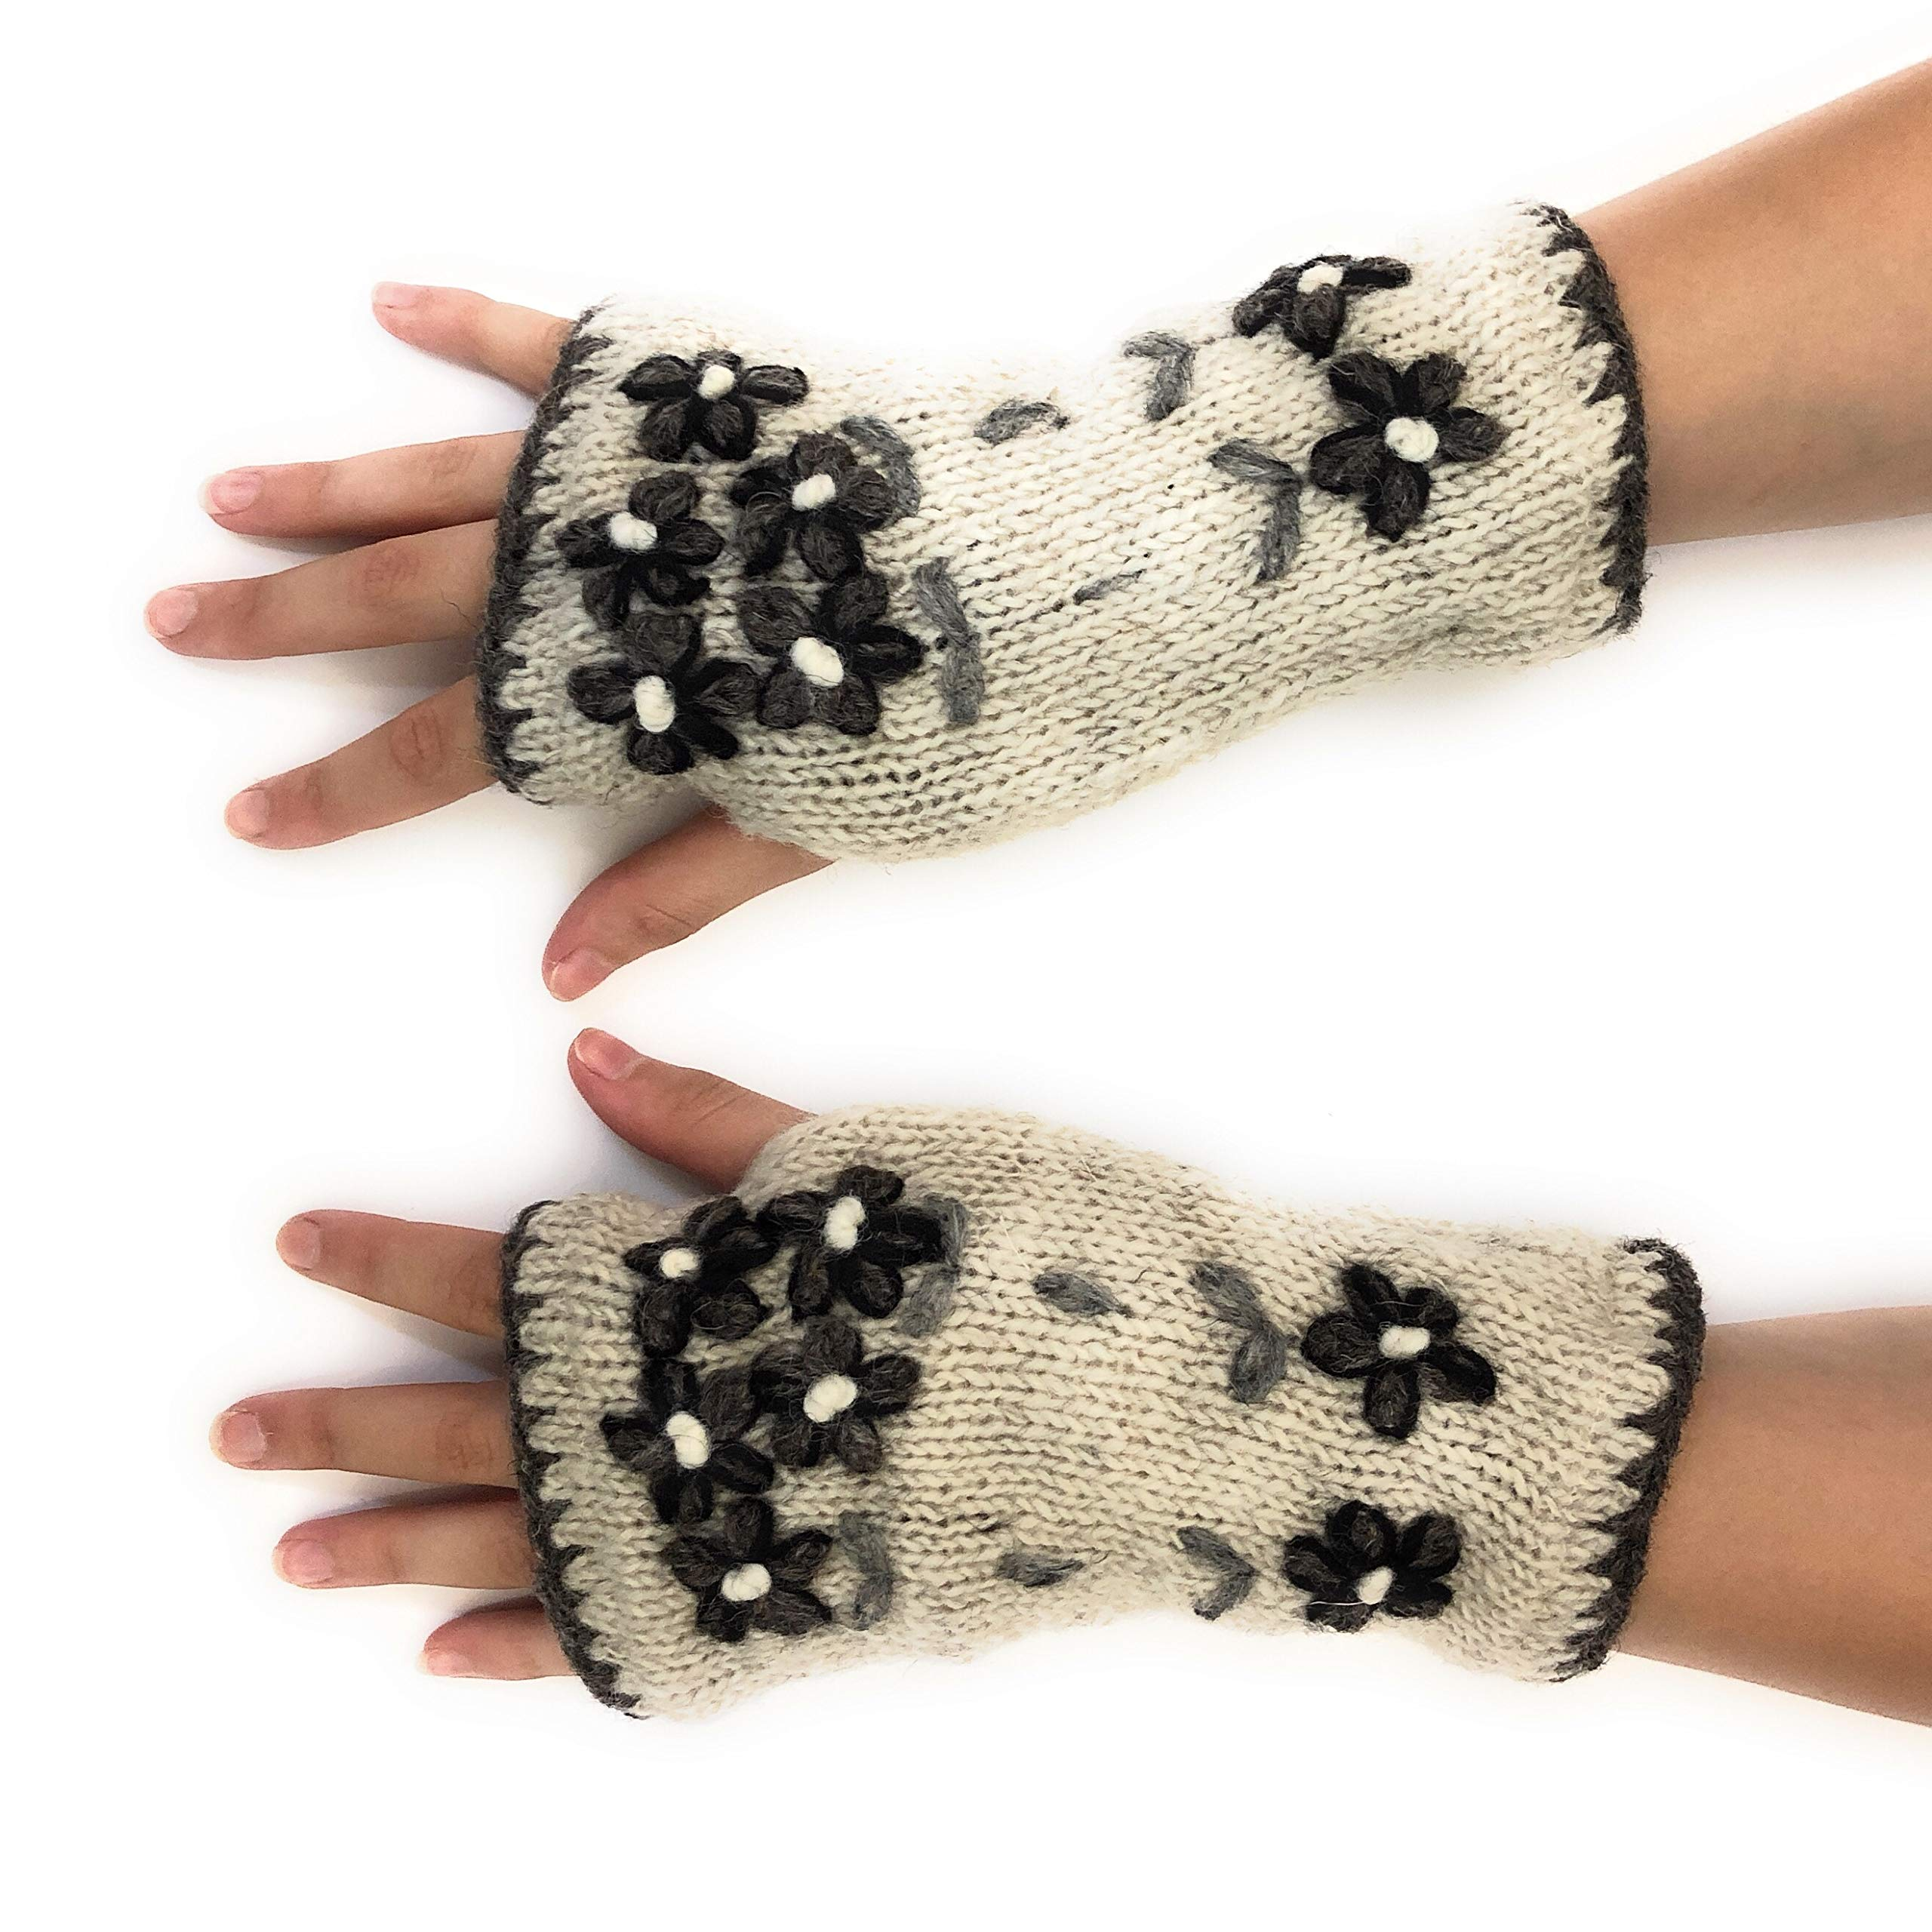 Hand Knit Fingerless Embroidered Flower Winter Wool Texting Gloves Mittens Warm Fleece Lined (Natural)